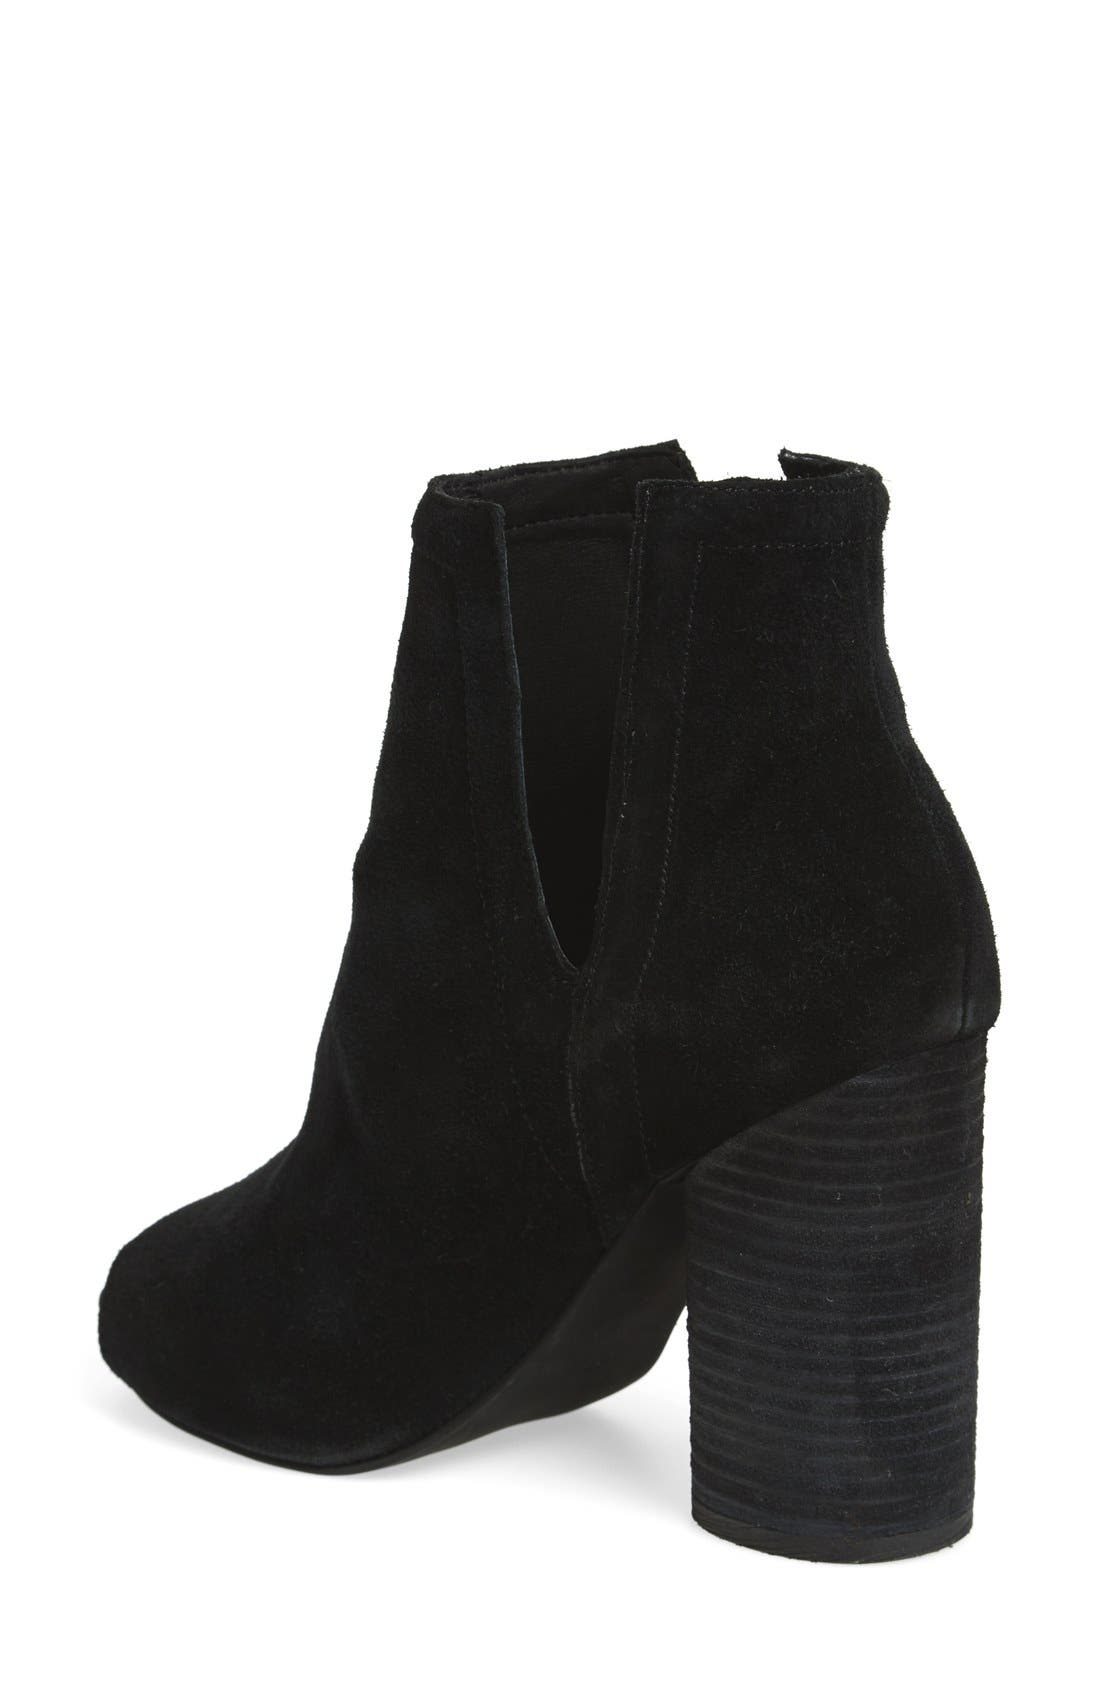 'Oath' Peep Toe Platform Bootie,                             Alternate thumbnail 2, color,                             Black Oiled Suede